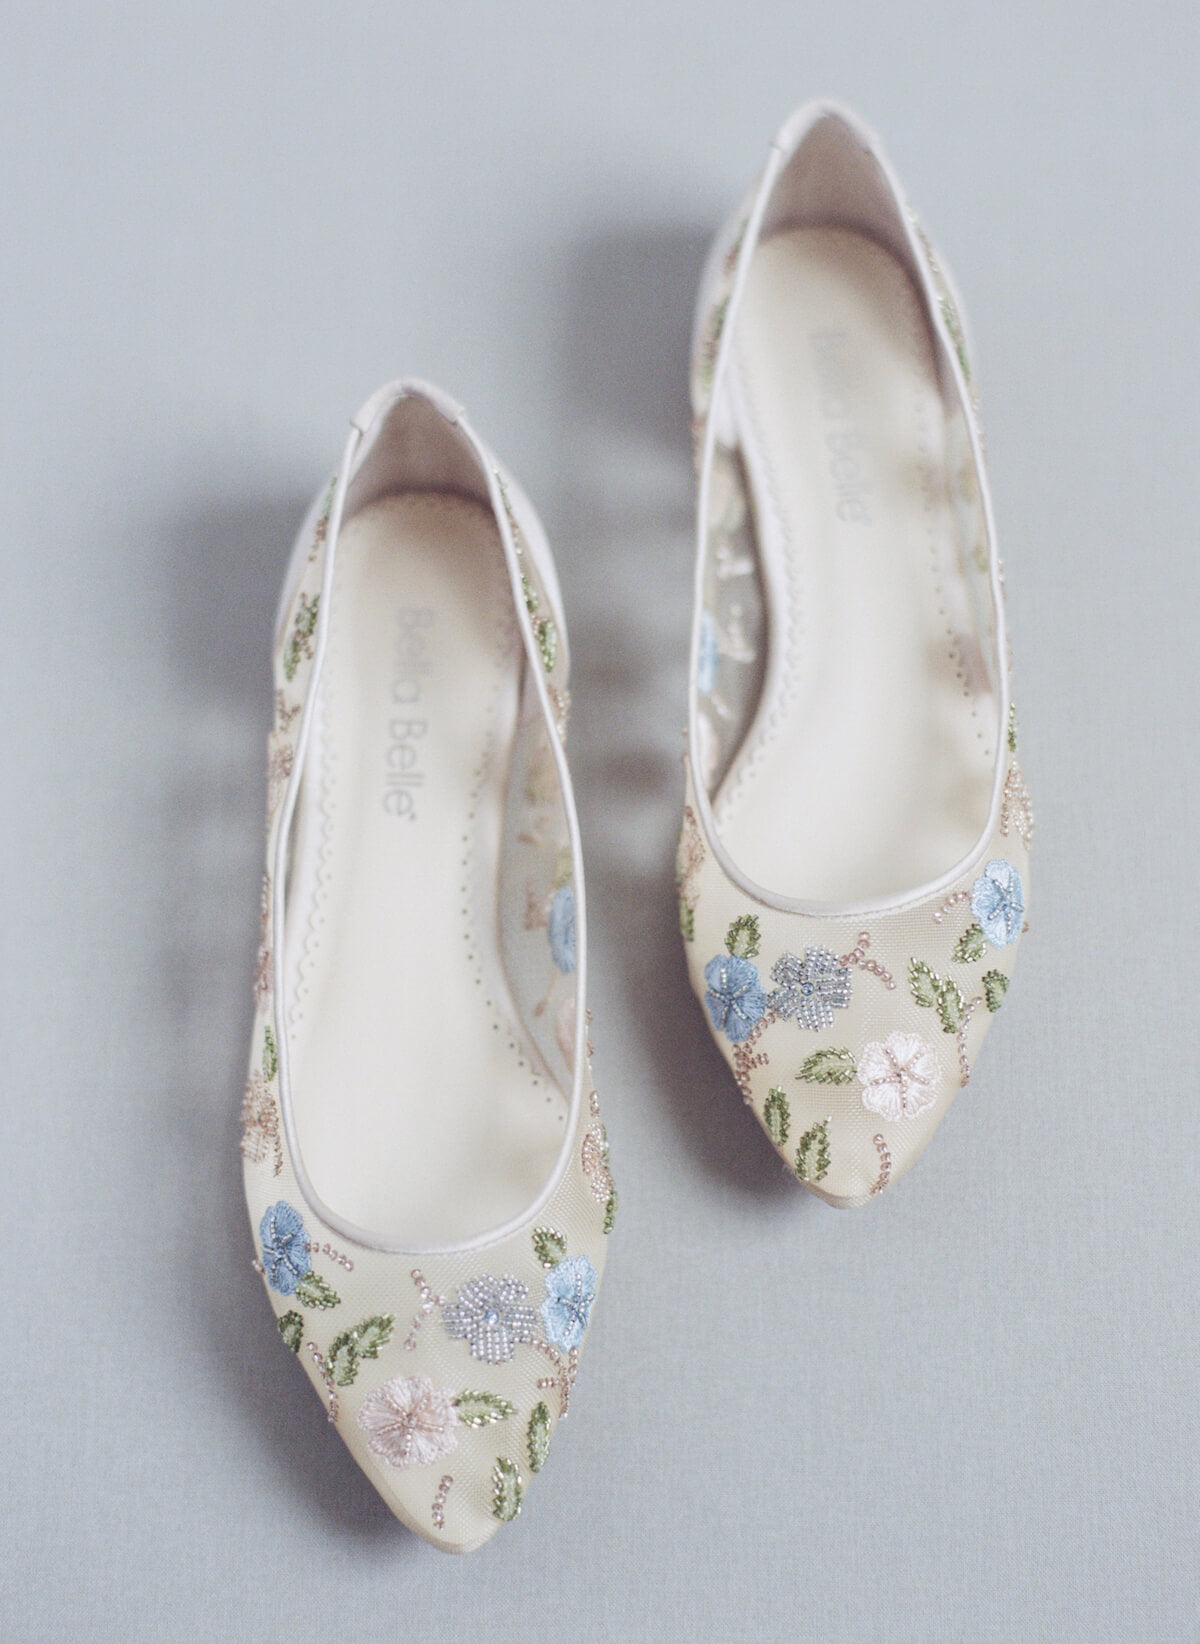 Bella Belle beach wedding shoes summer wedding flats